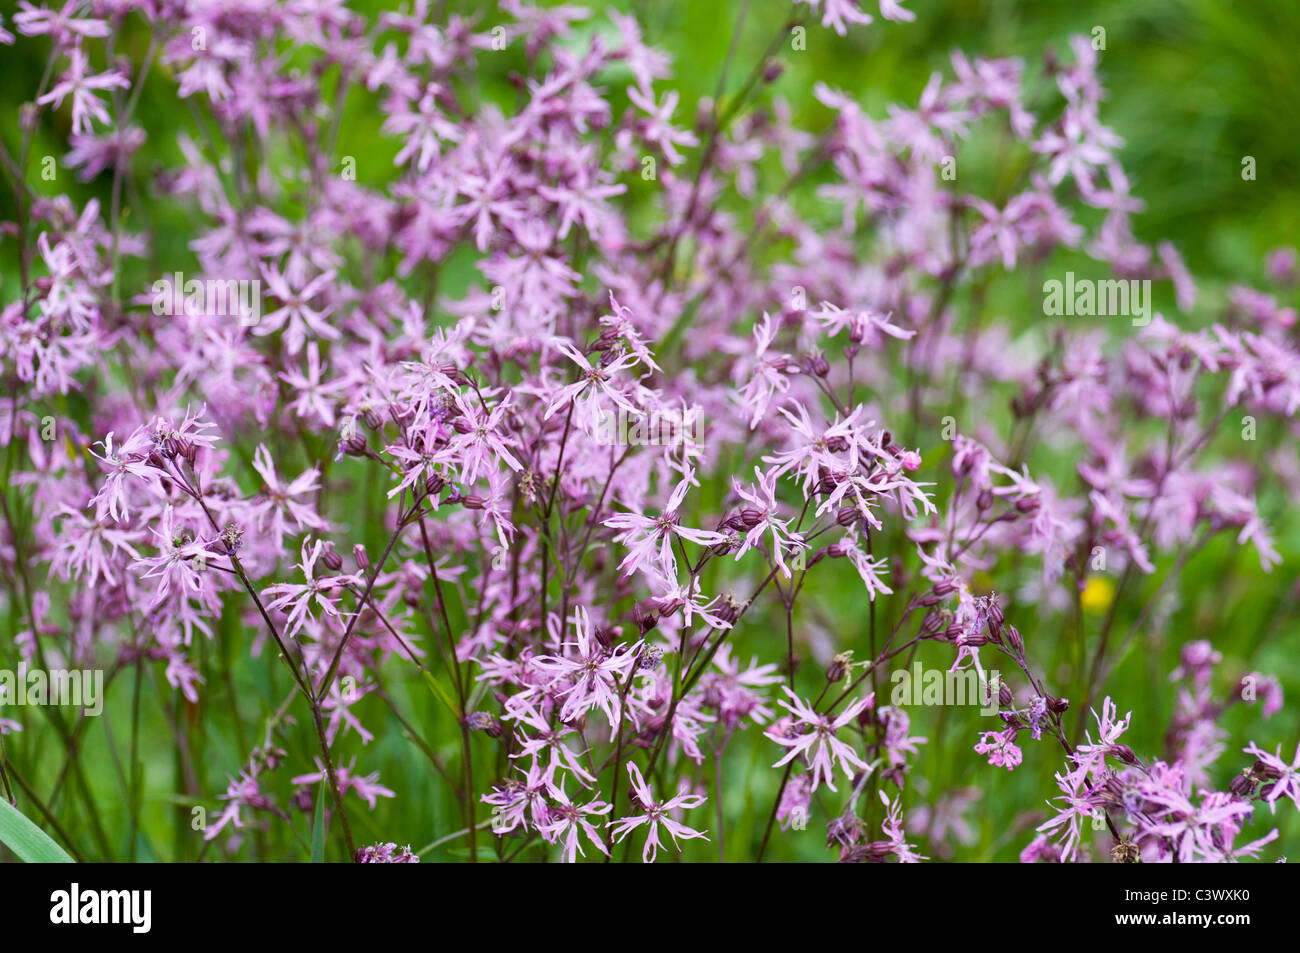 Wild pink campion flowers meadow campion ragged robin stock photo wild pink campion flowers meadow campion ragged robin mightylinksfo